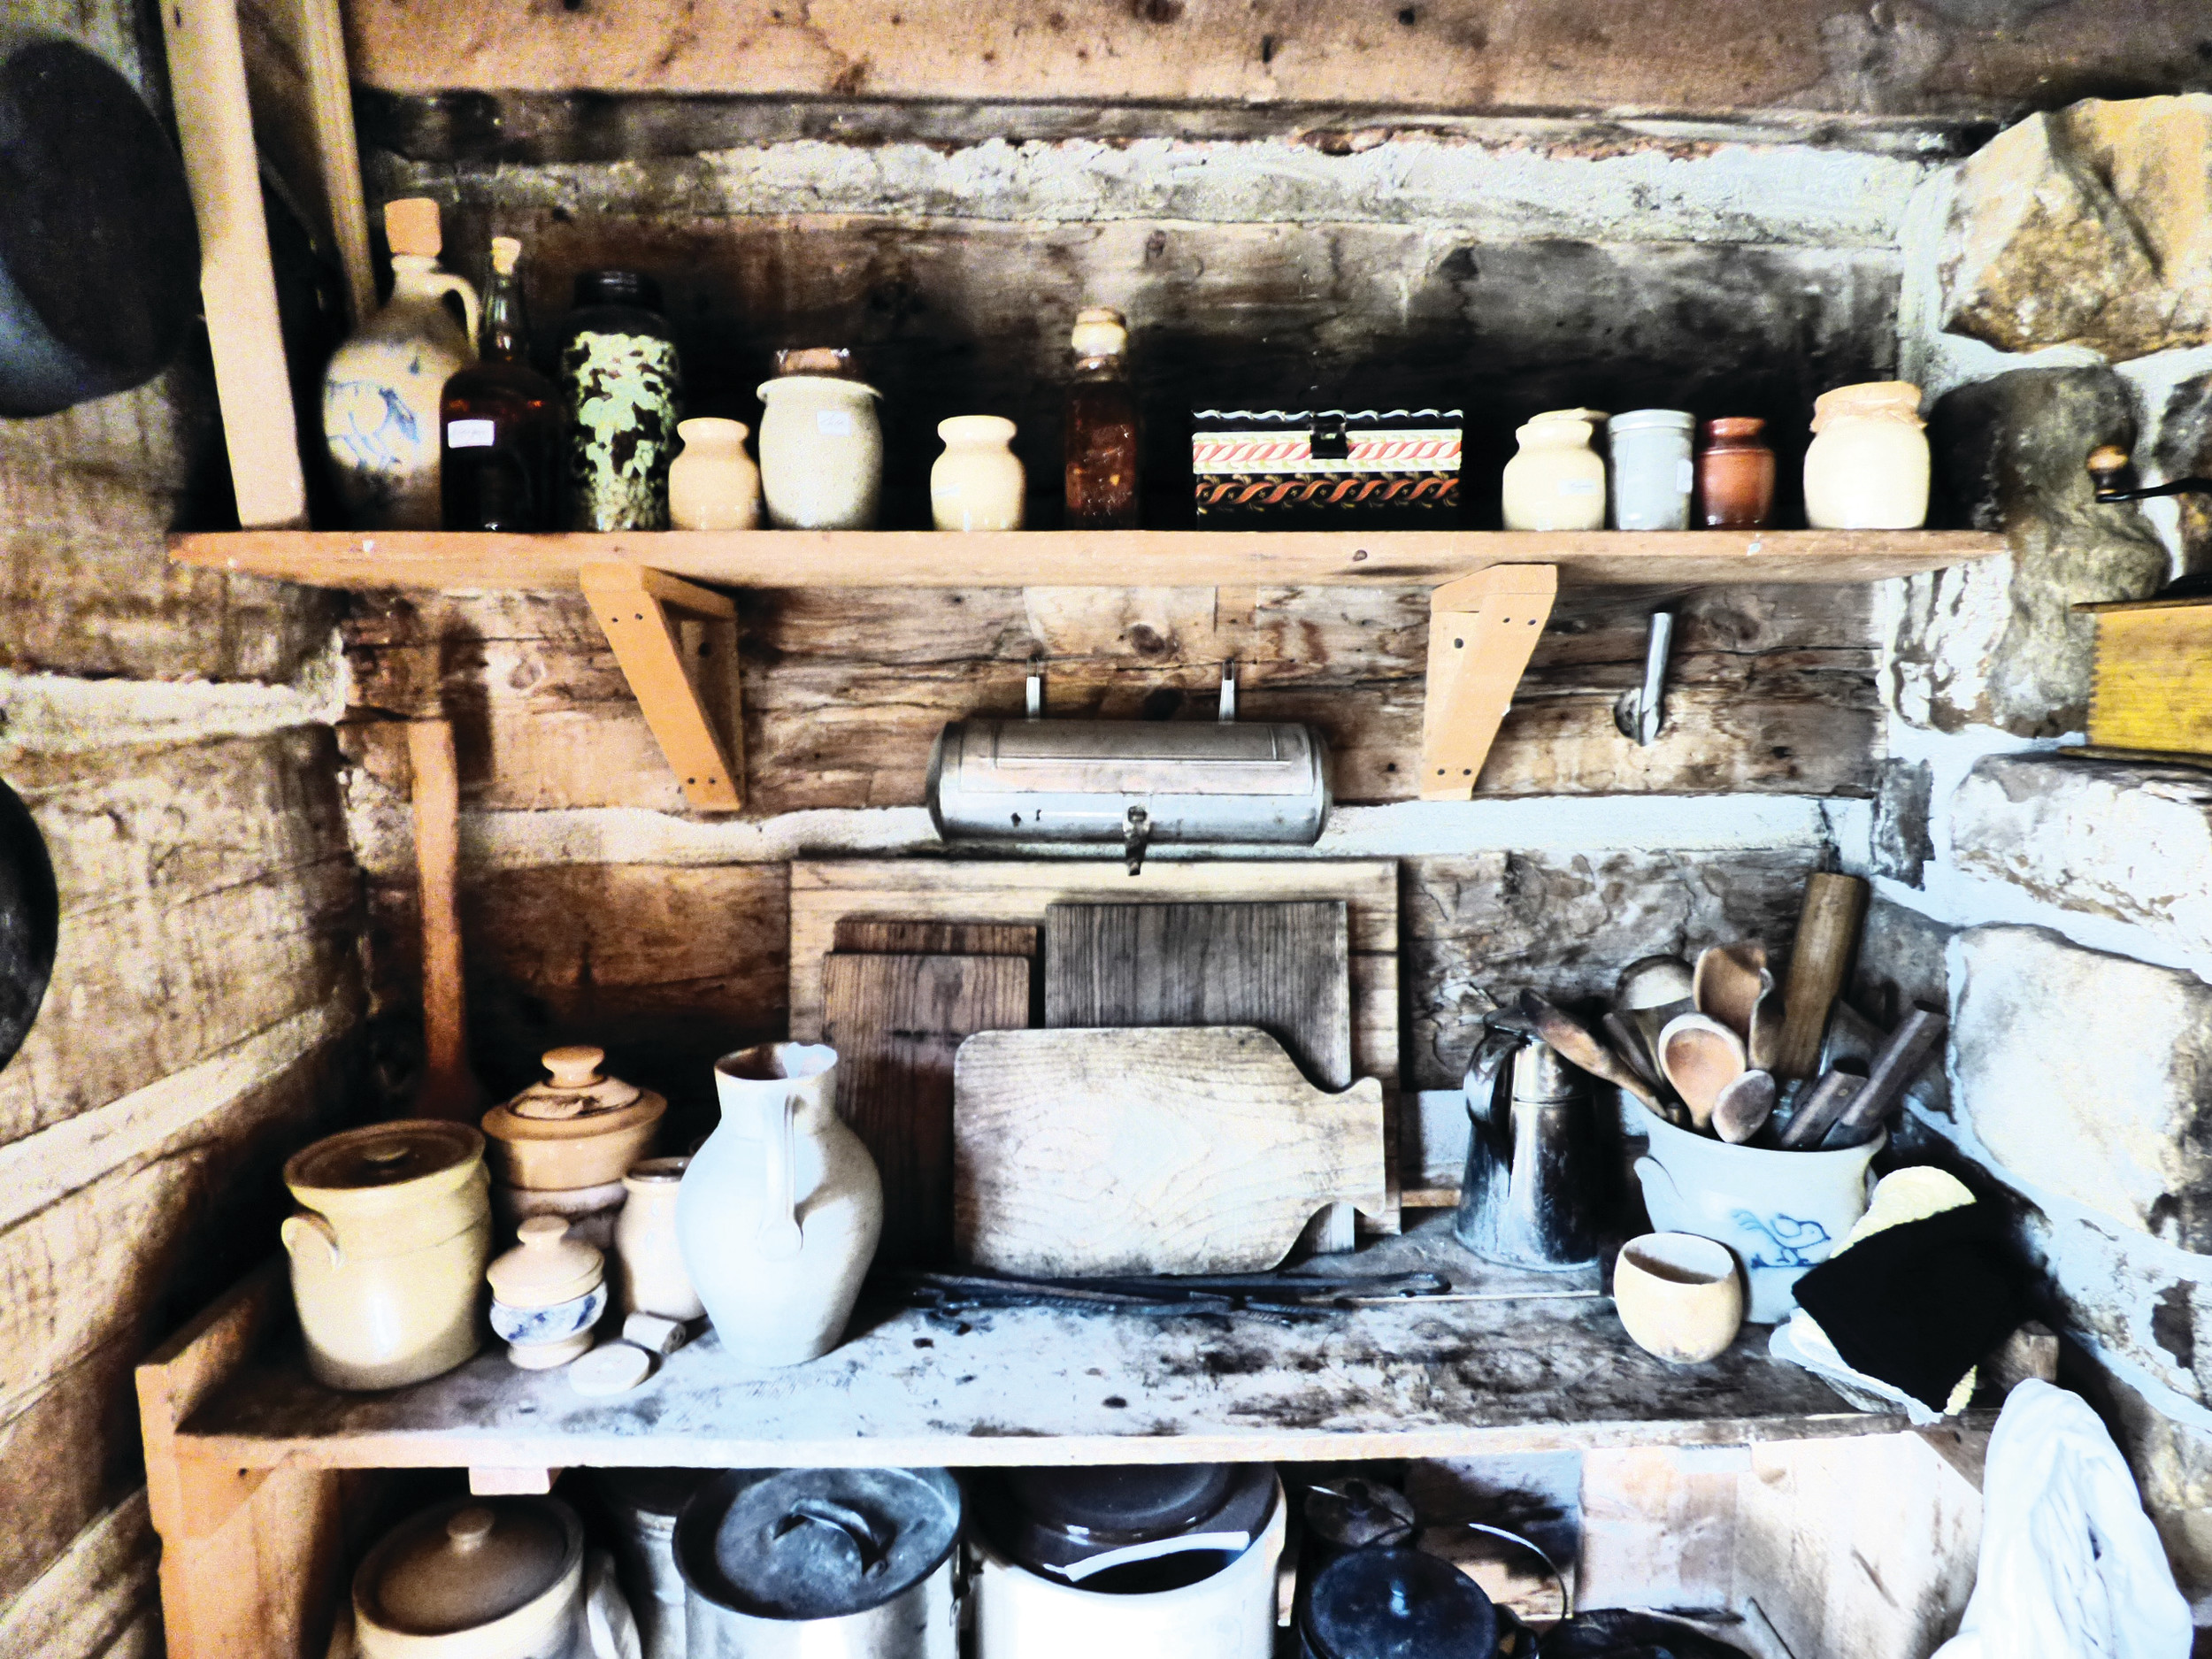 The kitchen in the McBroom cabin. Stoves were too expensive for most early settlers, who cooked over open fires or in fireplaces.